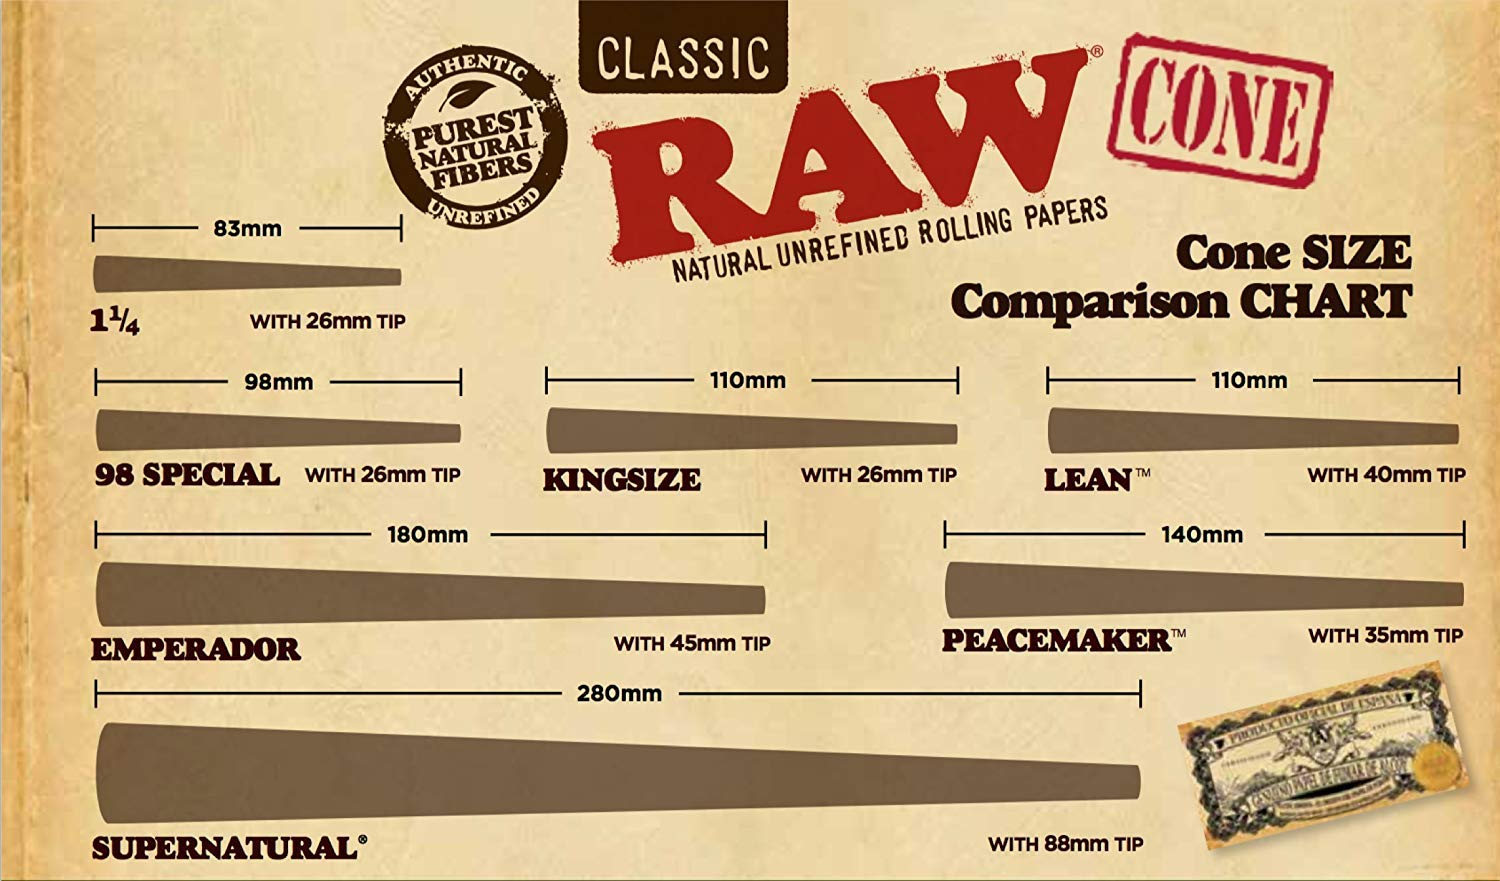 RAW Classic Natural Unrefined 20-Stage Rawket Launcher - 20 Cone Variety Pack (1 Pack) 1